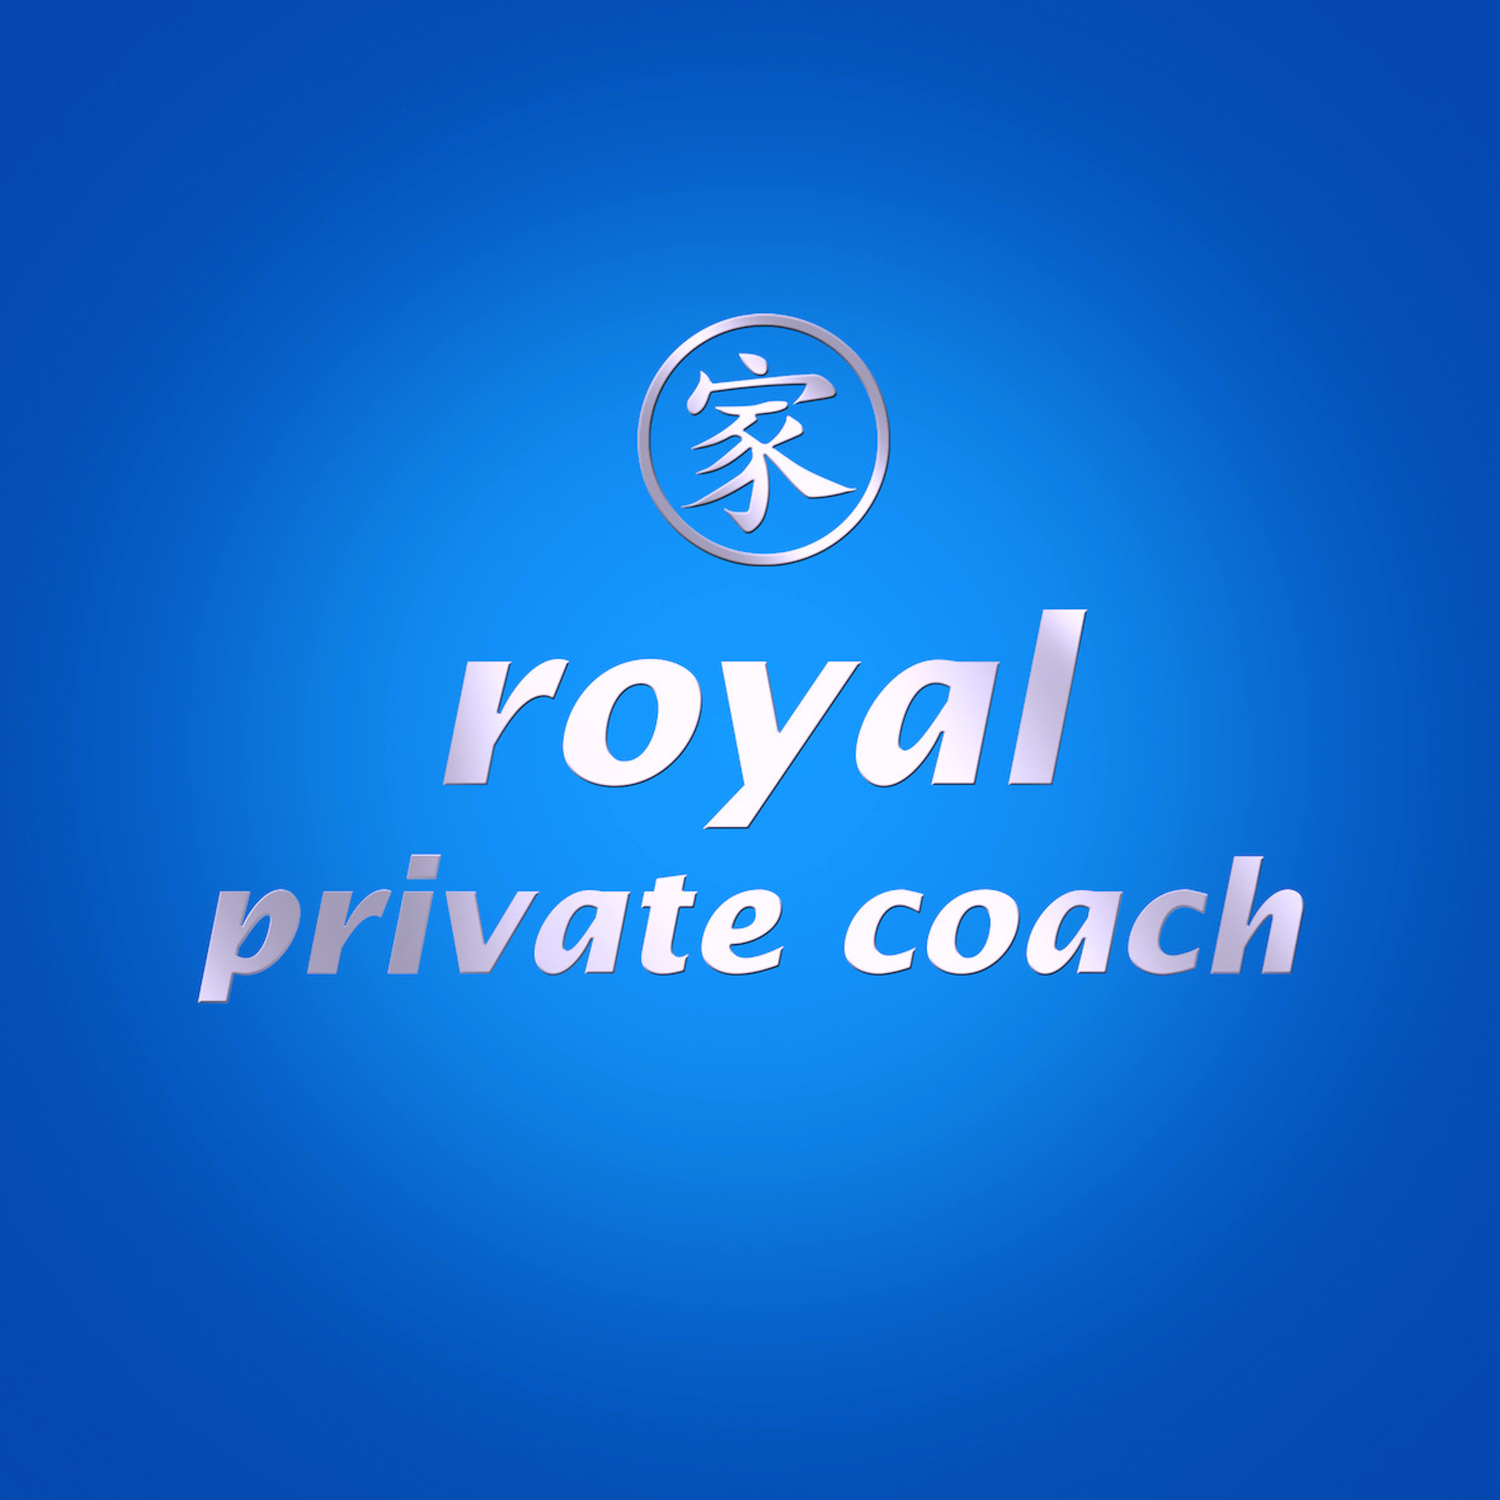 Royal Private Coach ® Berlin Munich Hamburg Düsseldorf Mallorca Ibiza Wien London ® Personal Training & Life Balance